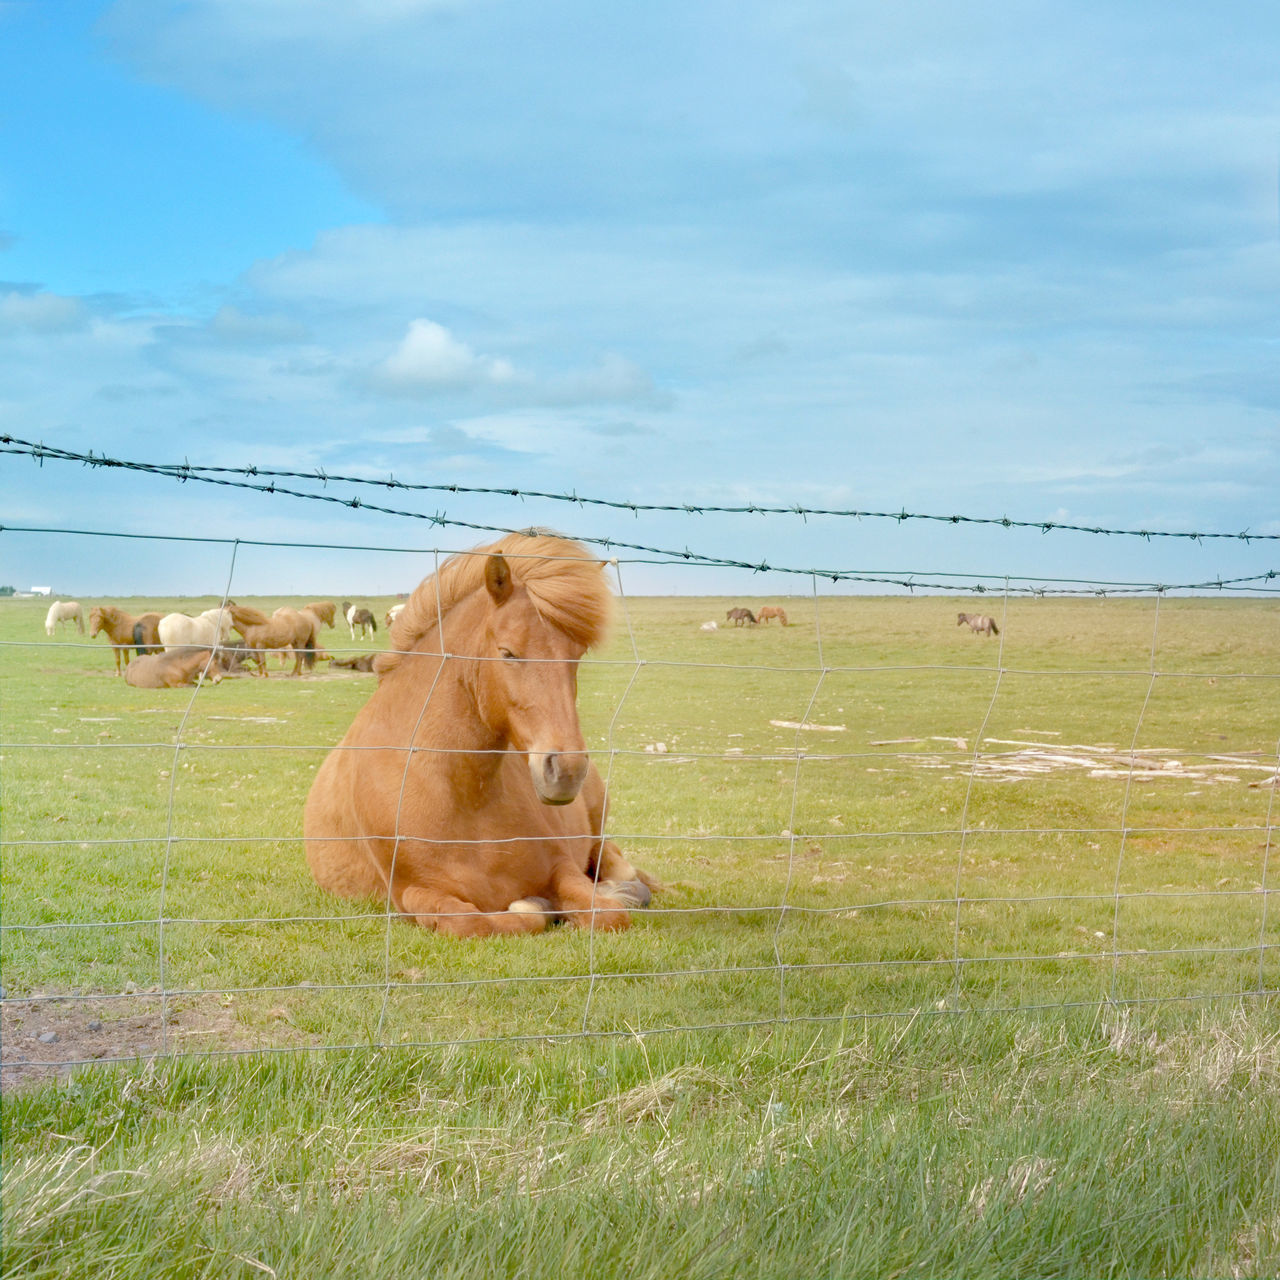 Horse Relaxing By Fence On Grassy Field Against Sky